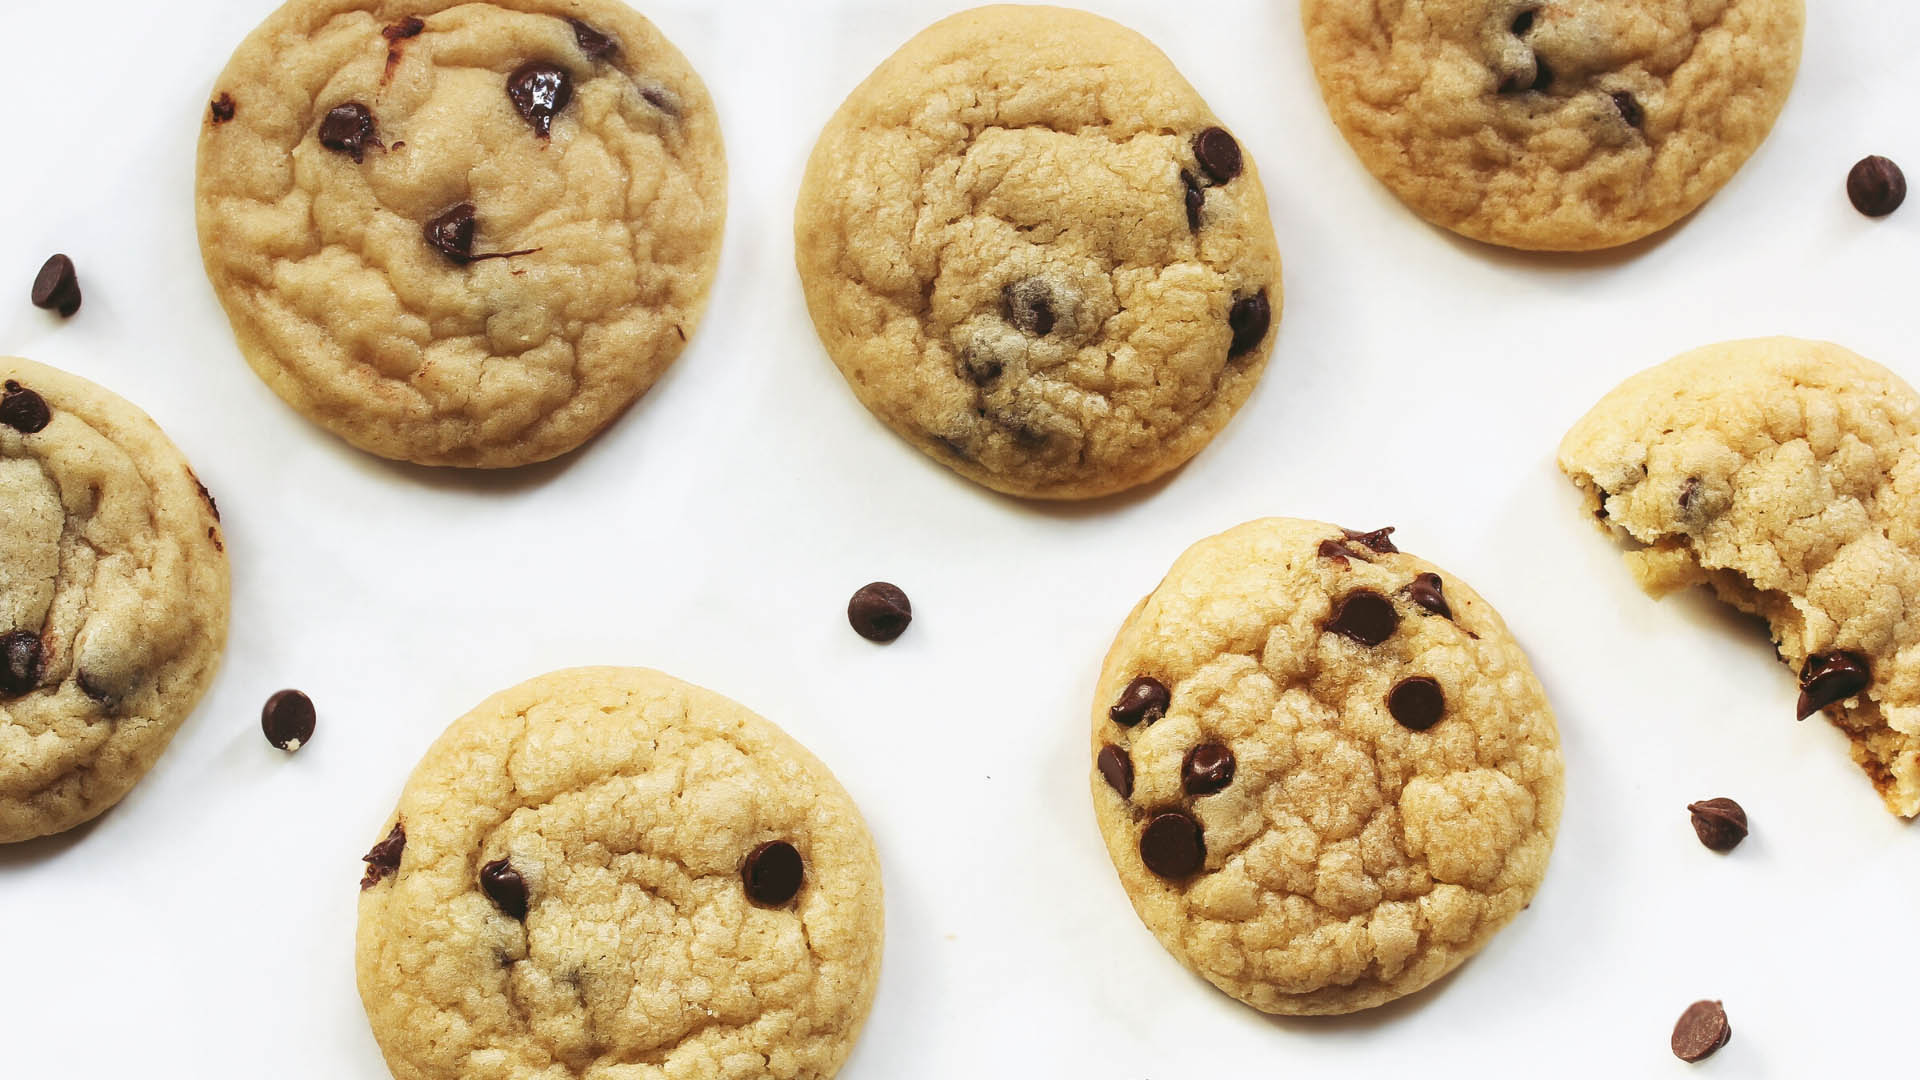 Image of Chewy Chocolate Chip Cookies